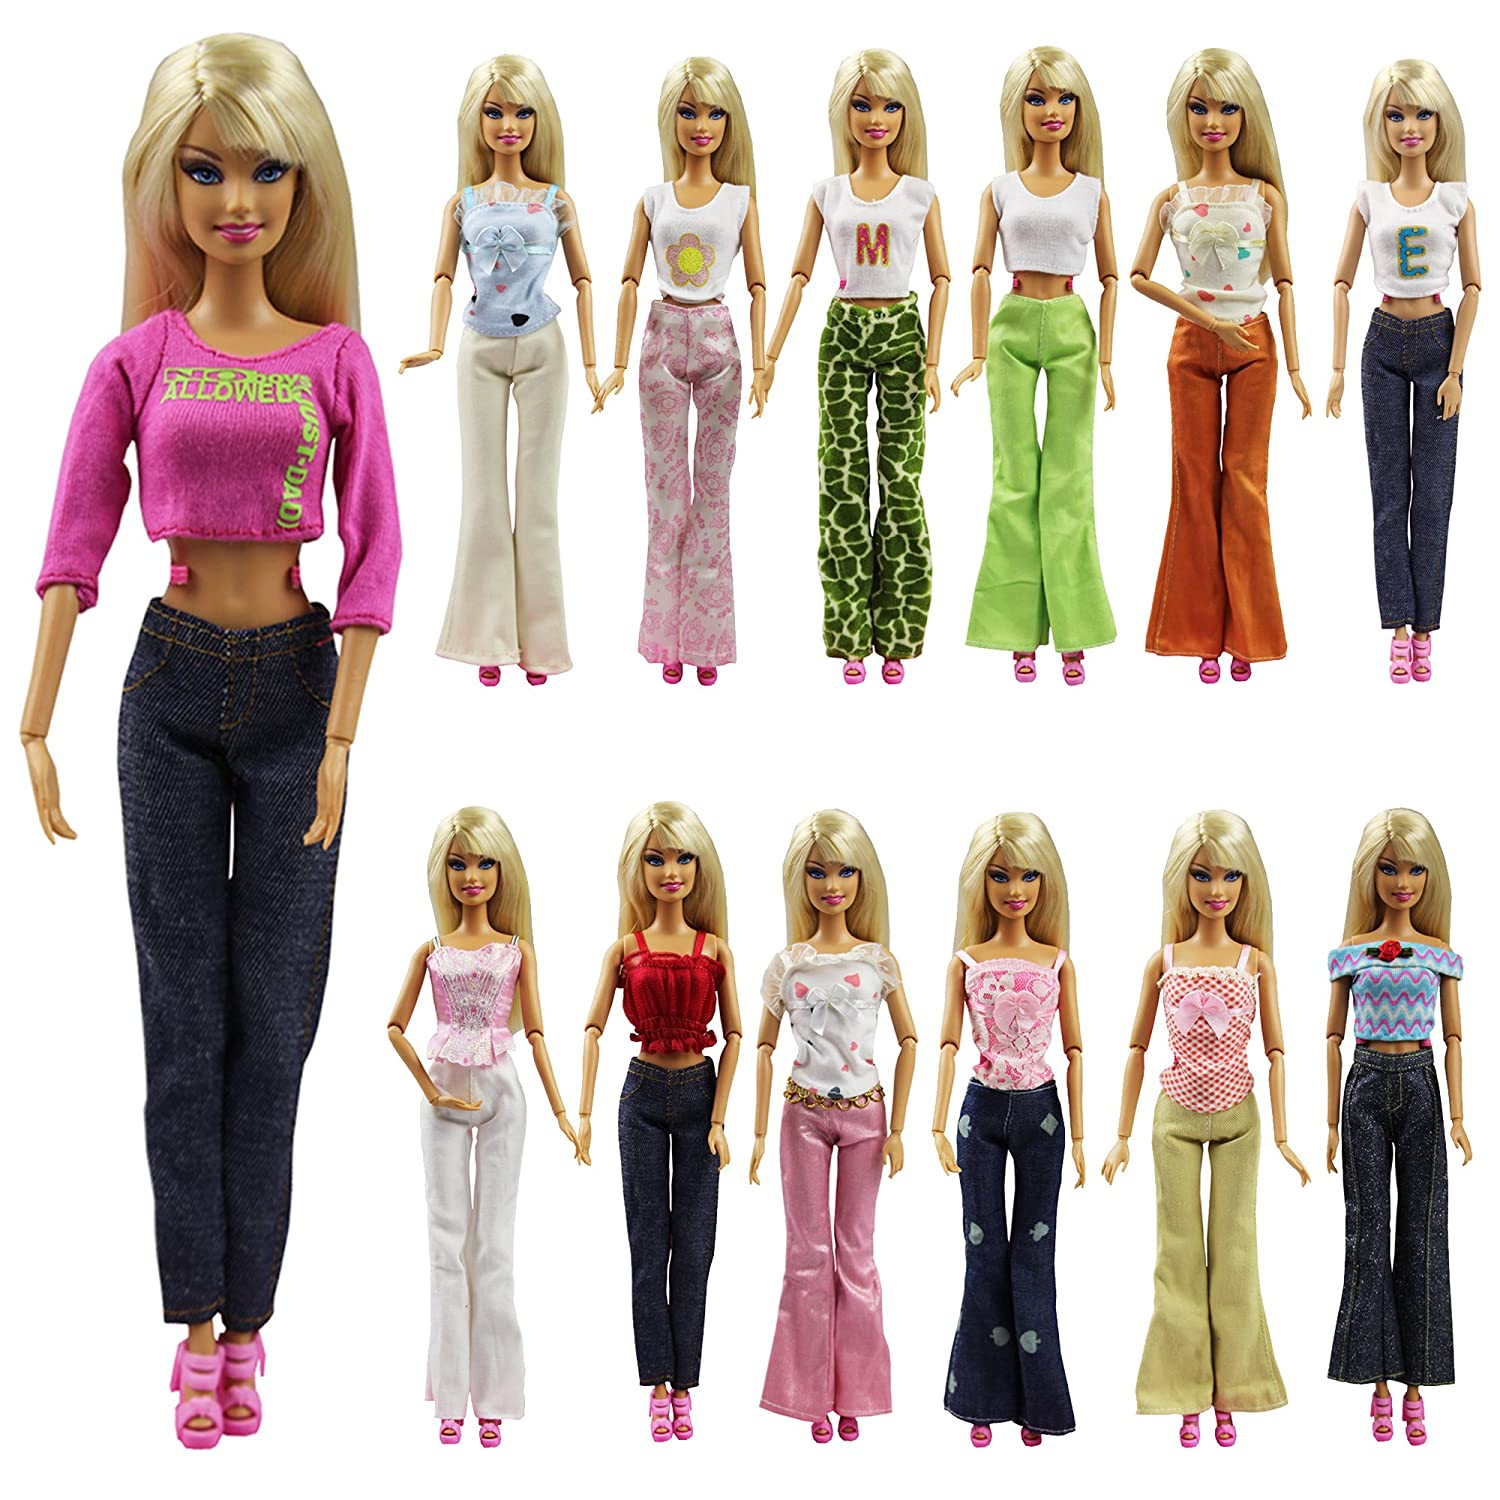 K.T. Fancy Set of 5 Quality Handmade Blouse + Trousers Pants Outfit Casual Wear for Barbie Clothes Xmas Birthday Gift Present